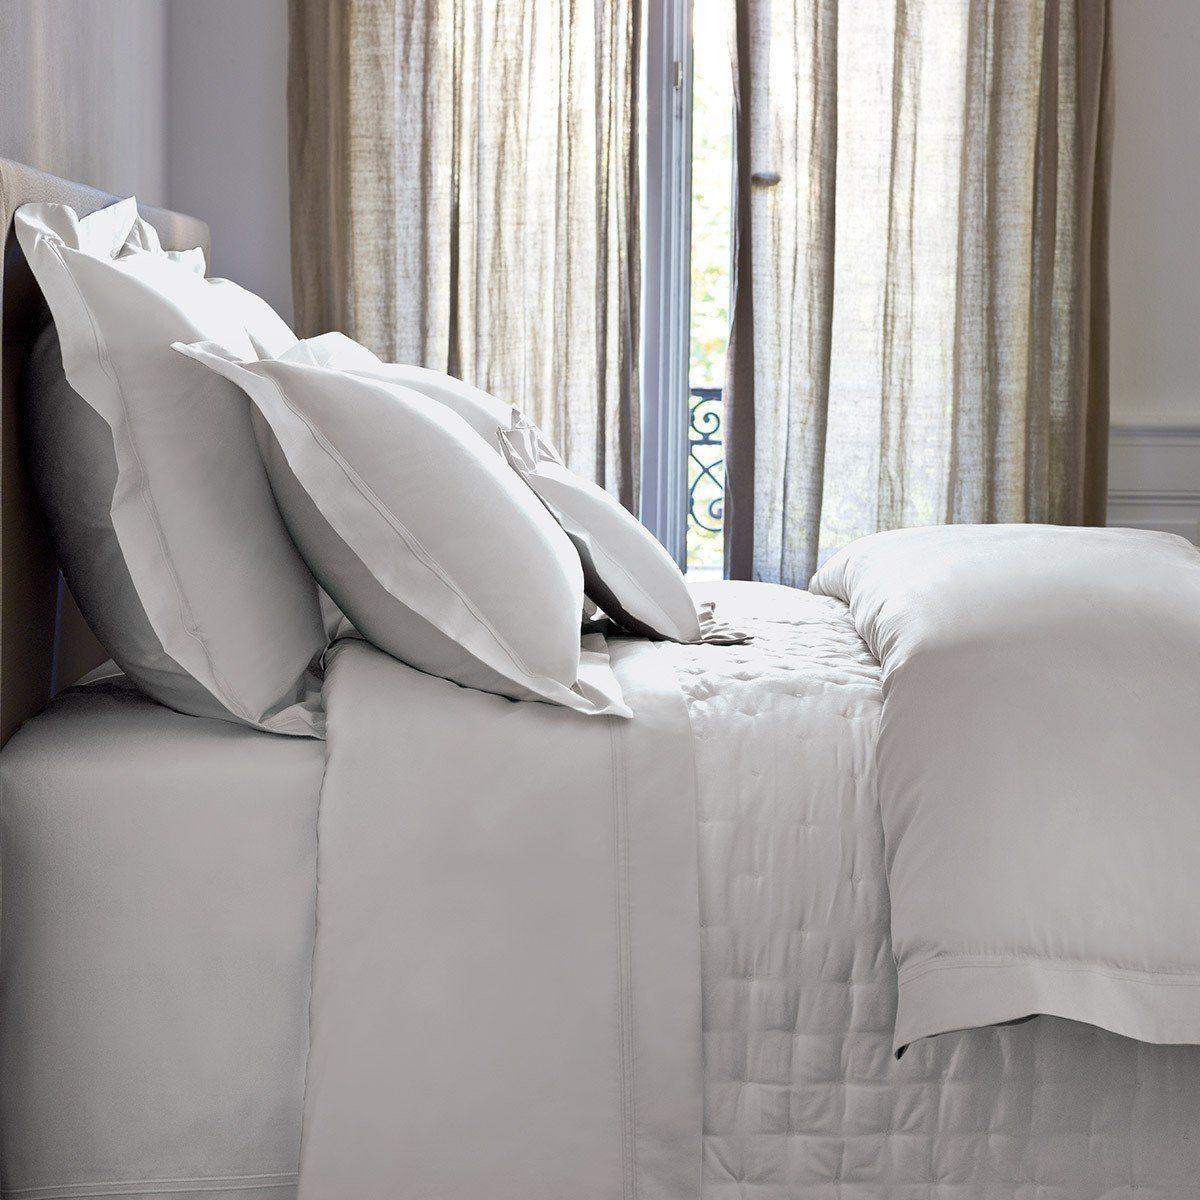 Image of Triomphe Silver Bedding by Yves Delorme